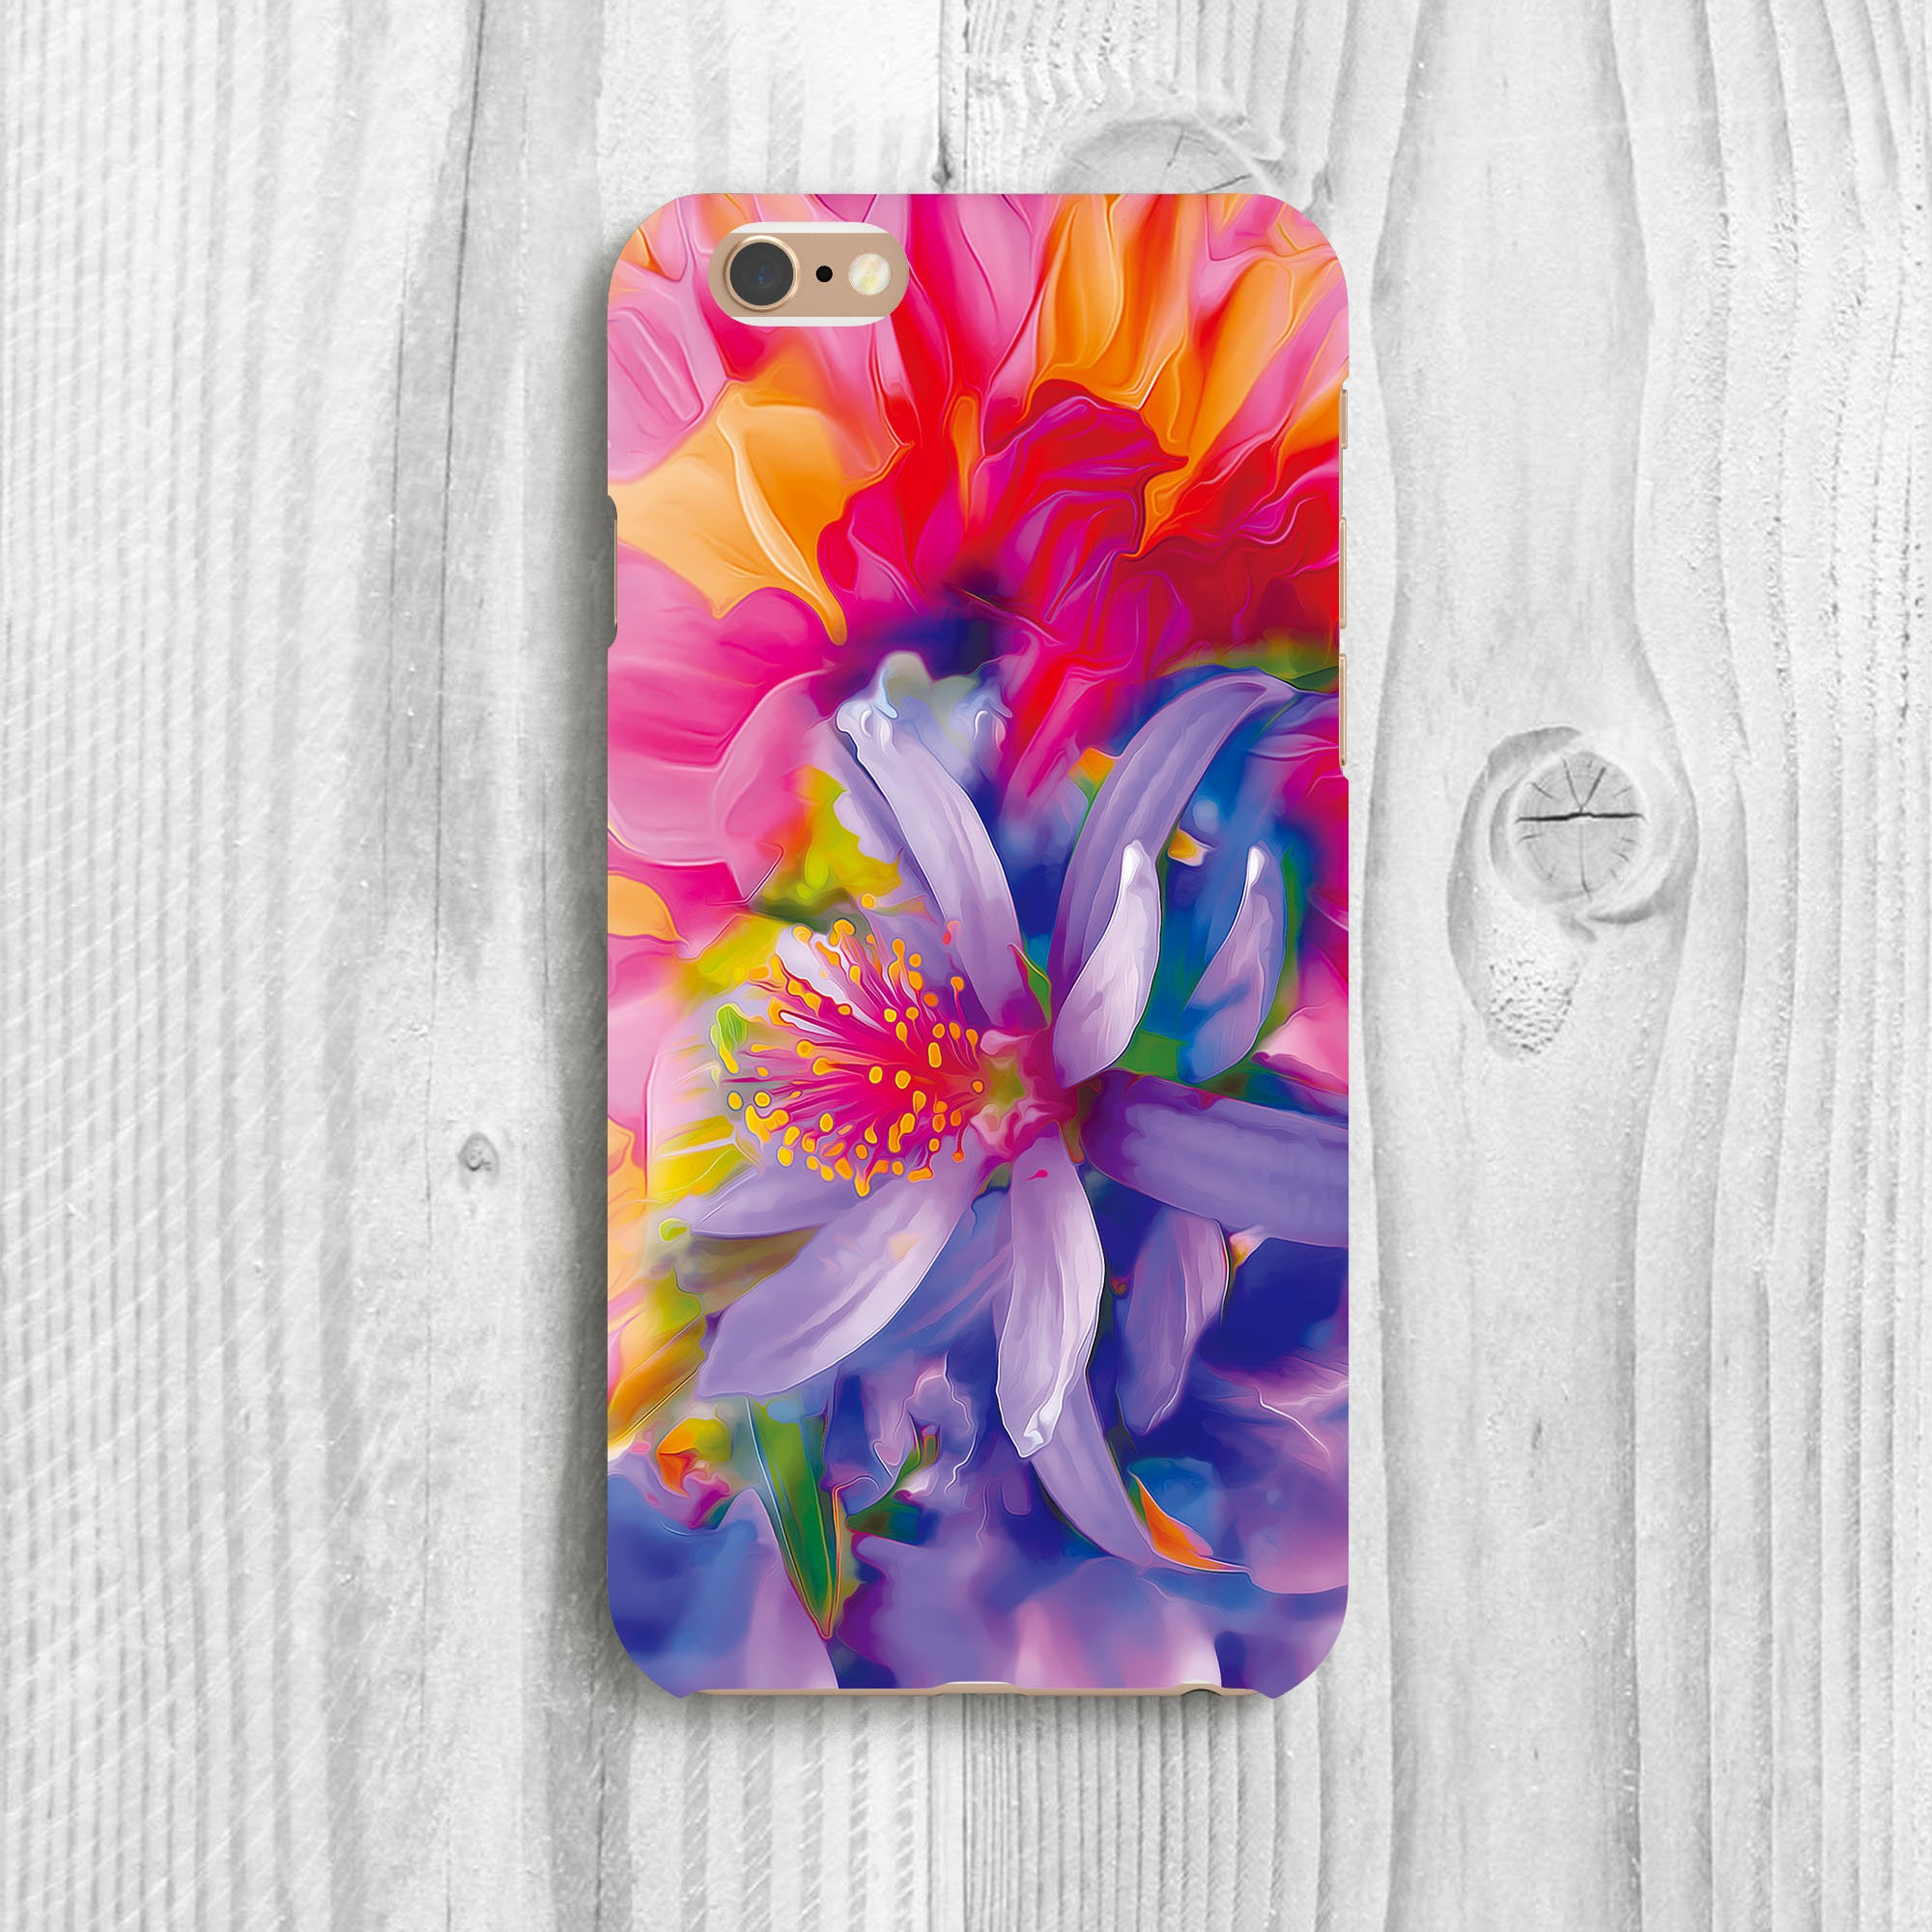 Electronics Cases Bags Purses Custom Hardcase Midnight Dots Iphone 4 5 5c 6 Plus 7 Case Flower Red Burst Of Emotion And Colors Samsung S 8 S7 Edge